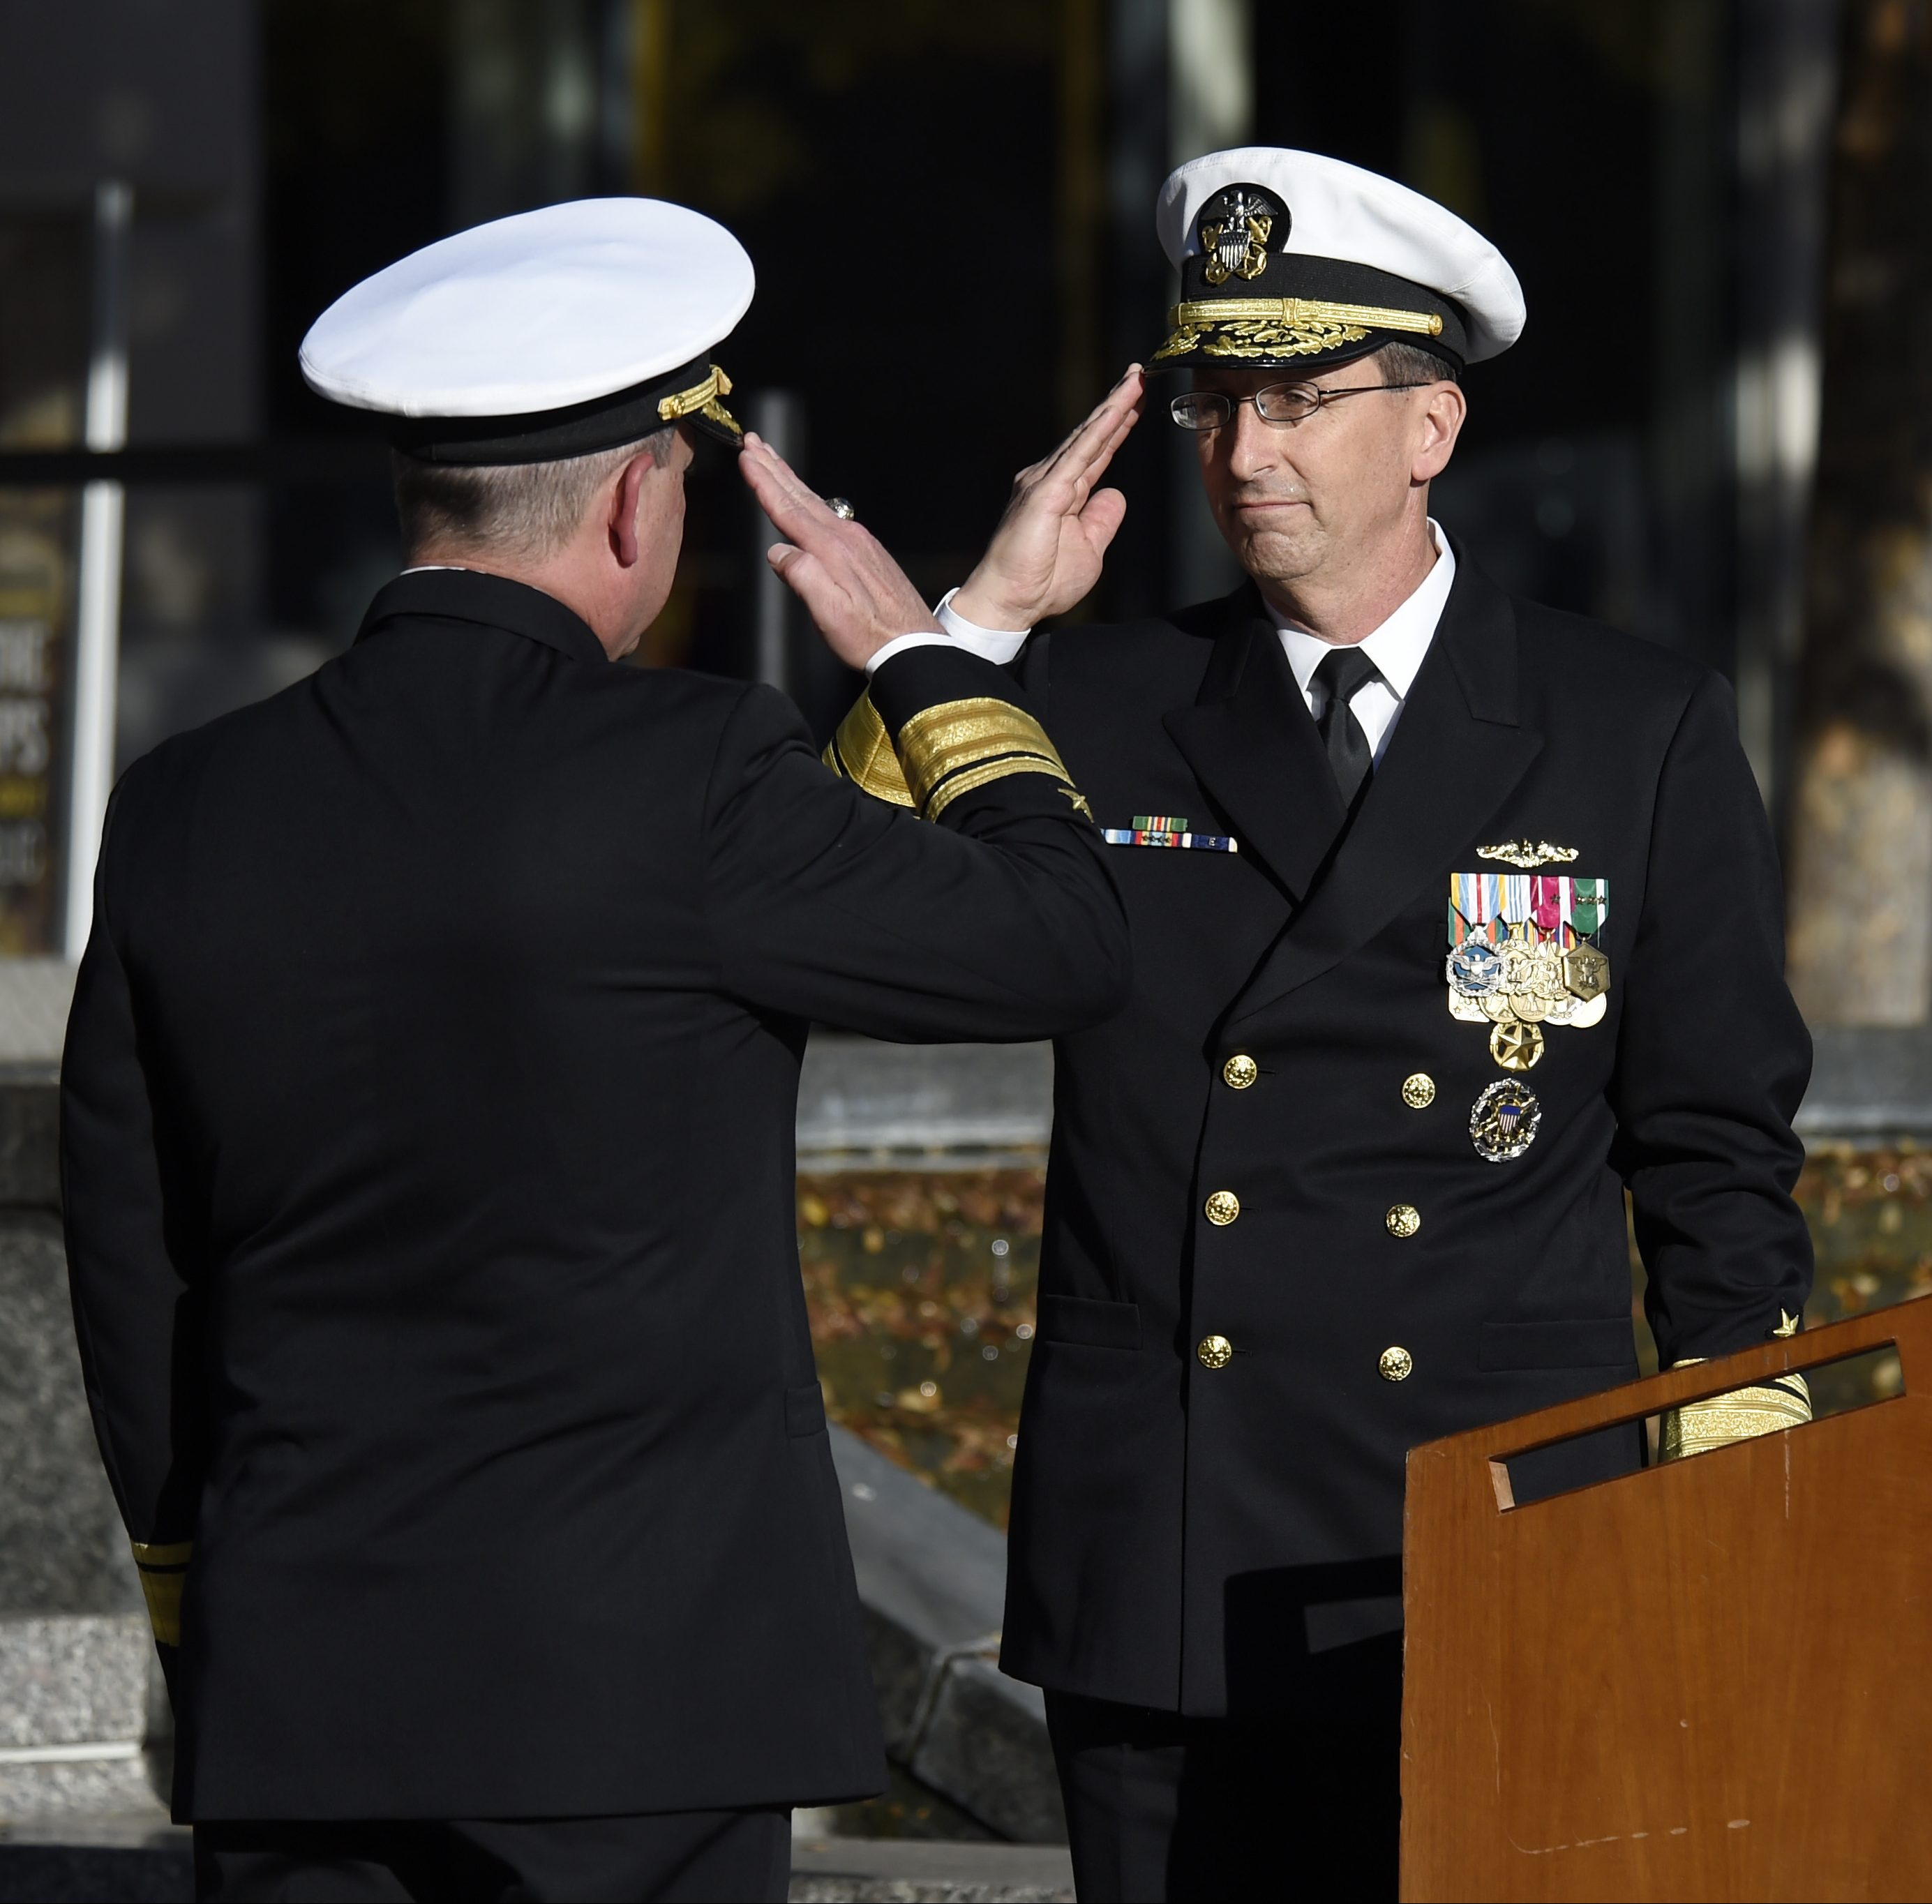 Rear Adm. David J. Hahn, right, relieves Rear Adm. Mat W. Winter as the chief of naval research (CNR) during a change-of-command ceremony at the U.S. Navy Memorial in Washington, D.C. on Nov. 18, 2016. US Navy photo.